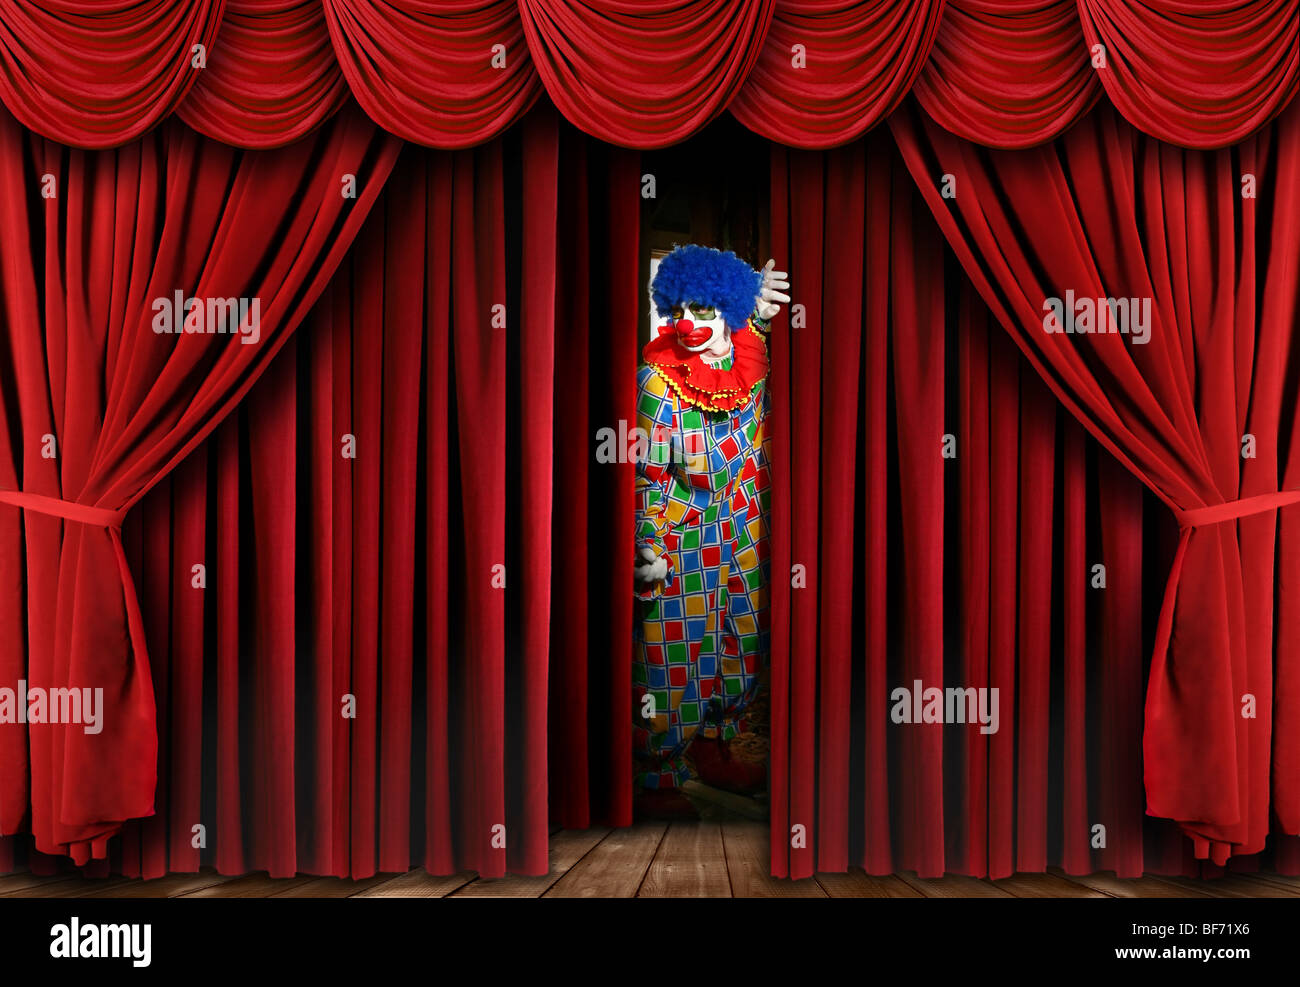 Eerie Creepy Clown Looking Through Stage Curtain Drapes - Stock Image